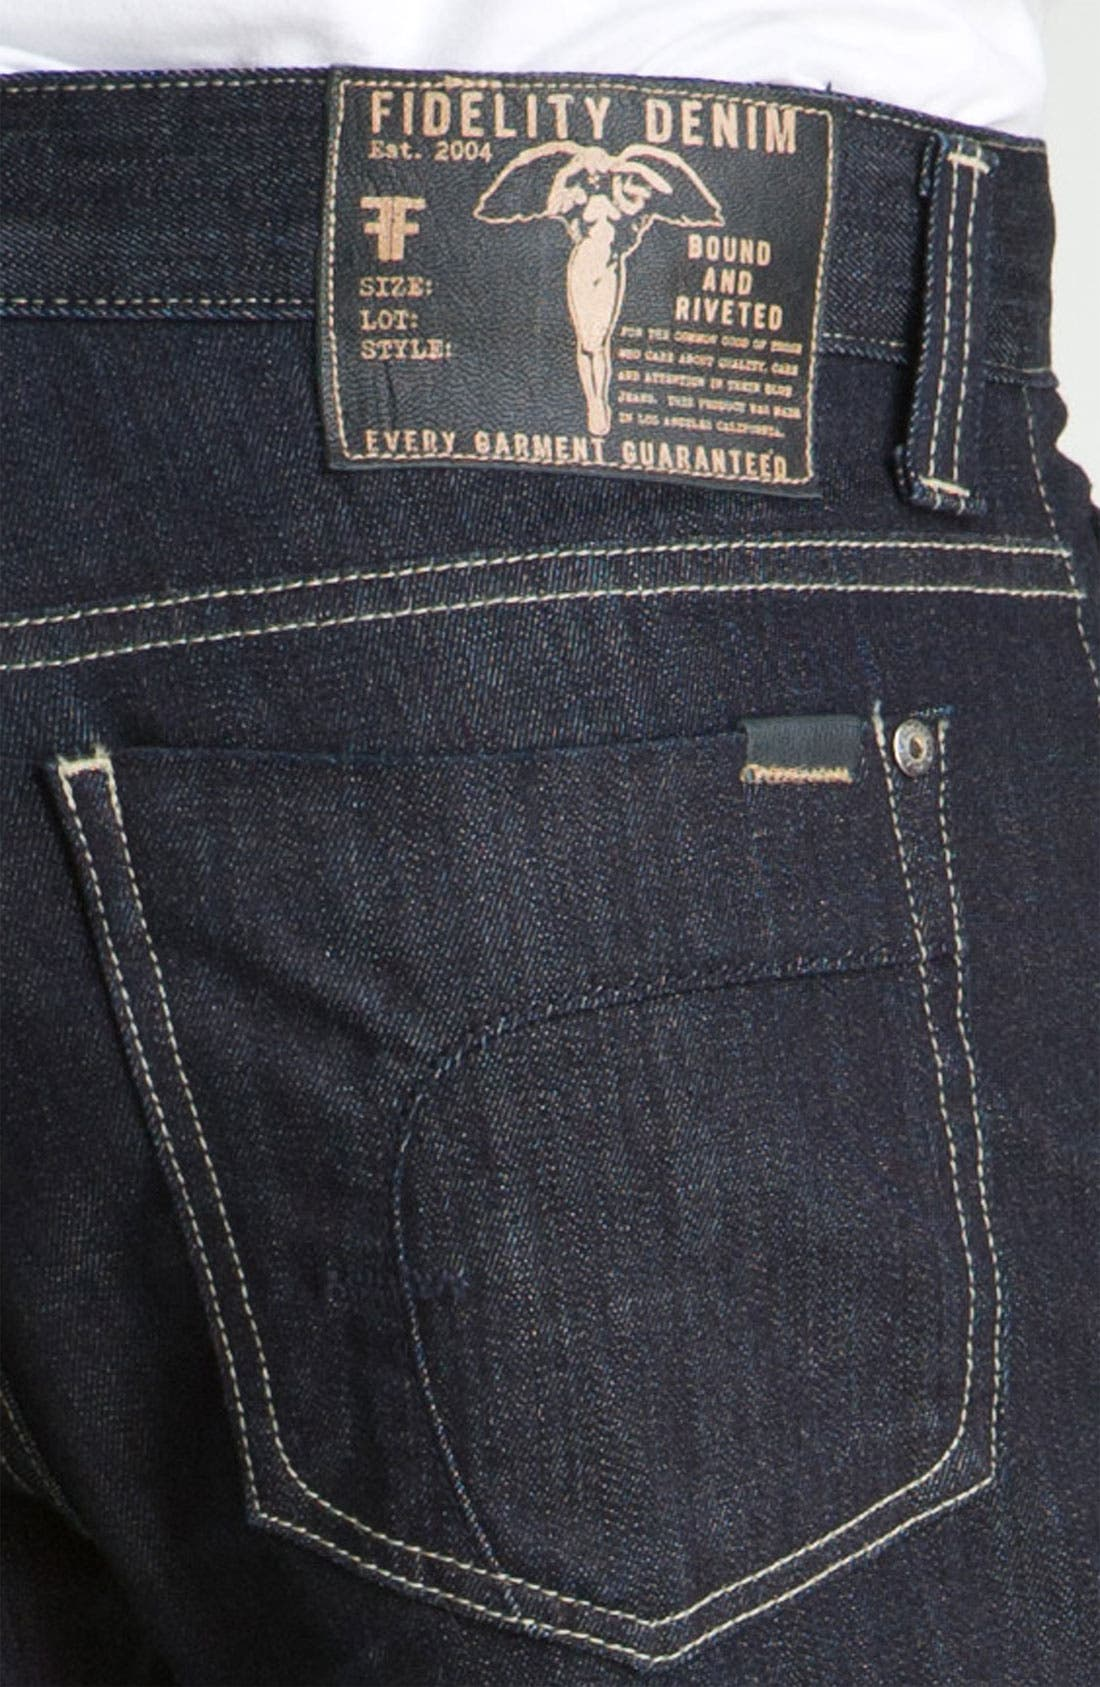 Alternate Image 4  - Fidelity Denim 'Camino' Relaxed Leg Jeans (Pacific Dark)